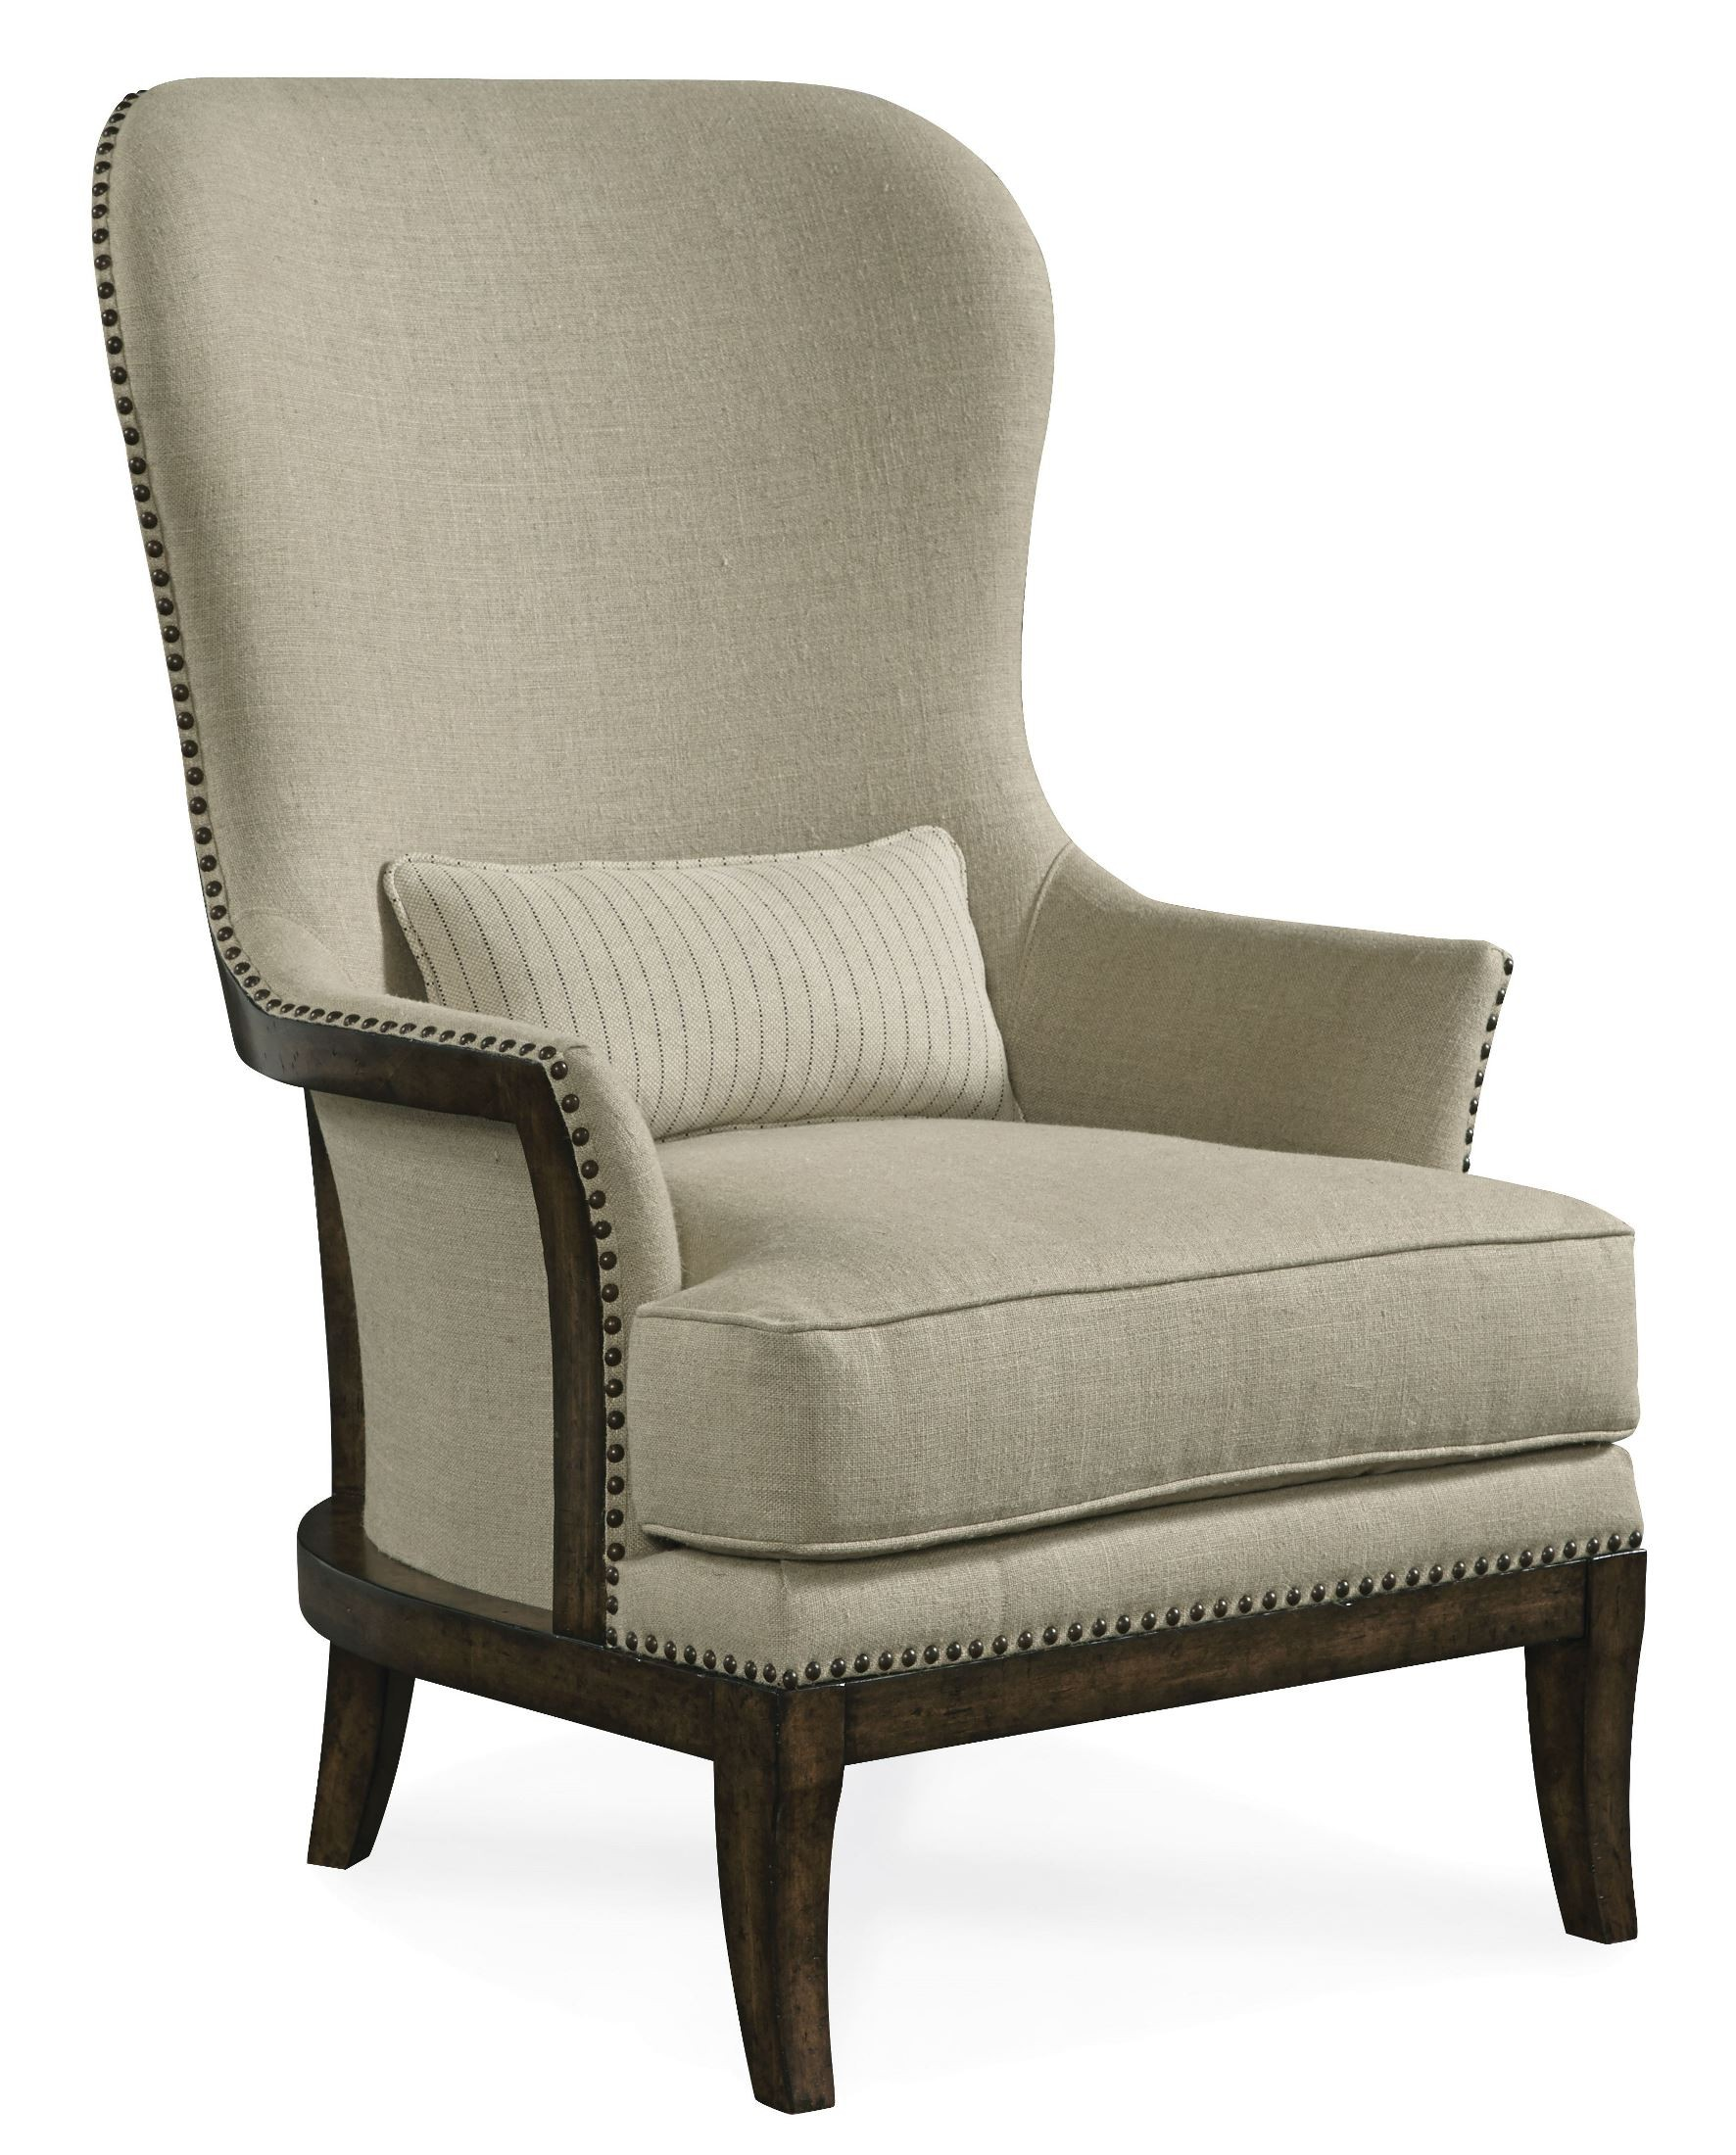 Accent Chairs Prices Logan Exposed Wood Back Arroyo Accent Chair From Art